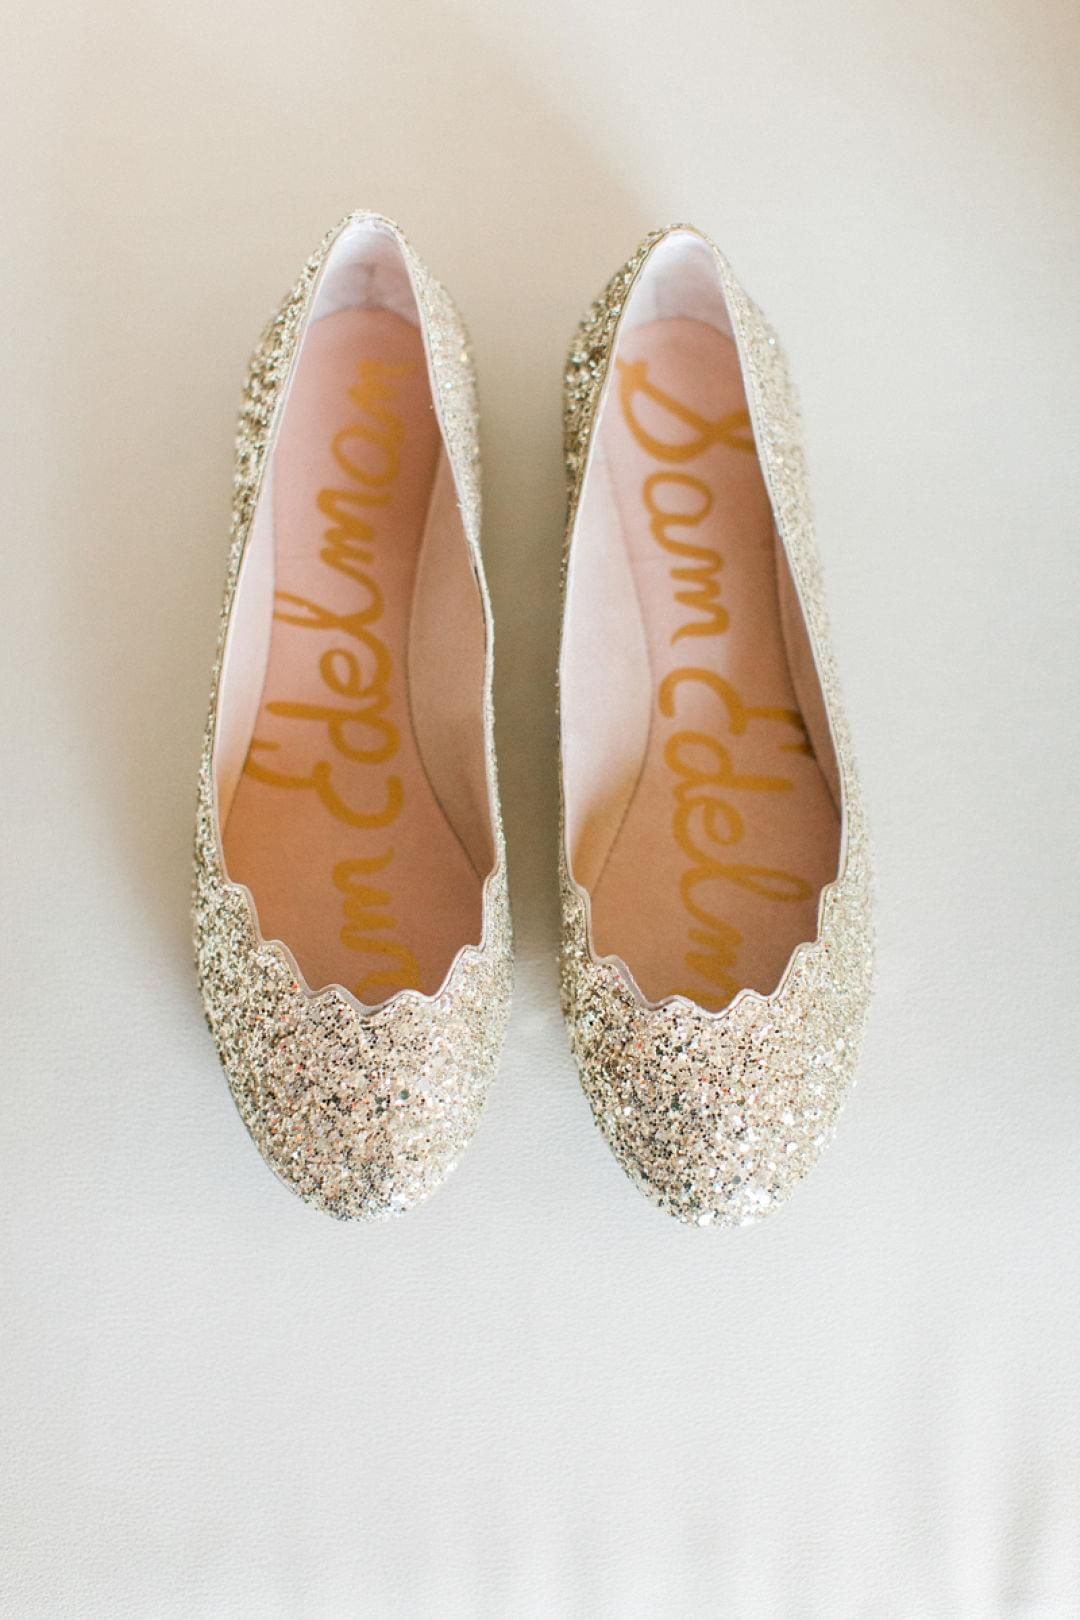 Wedding shoes, gold flats, sparkly, scalloped sparkles